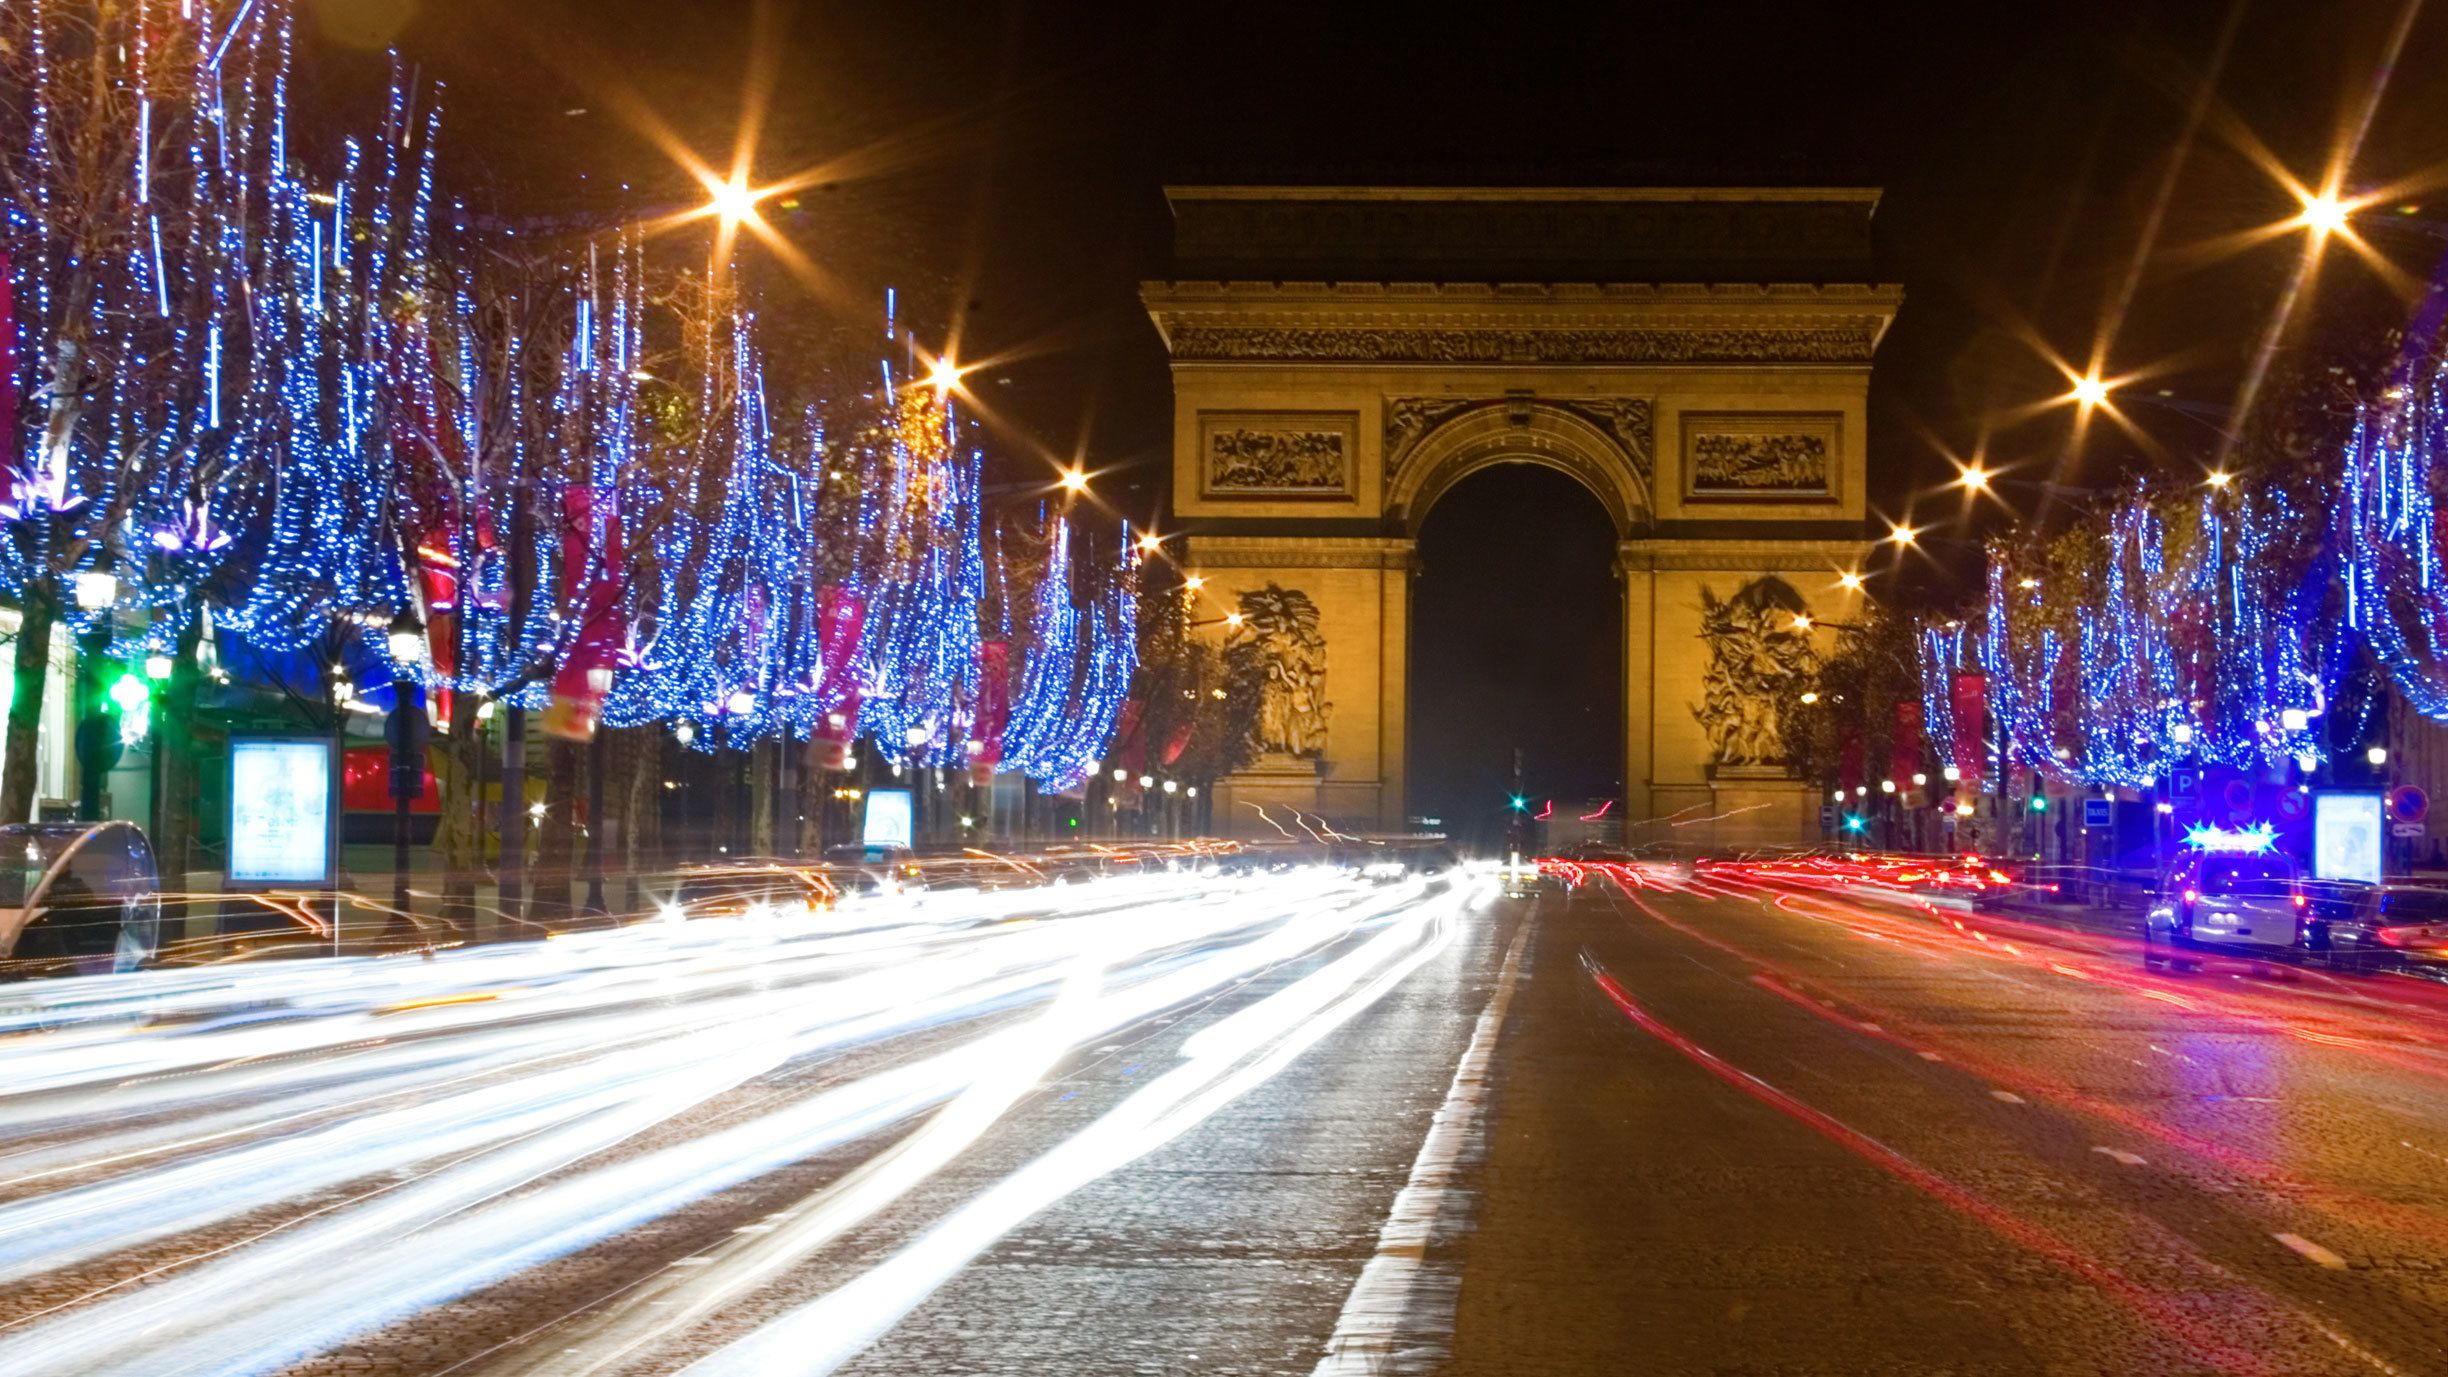 Christmas lights up at the Arc de Triomphe